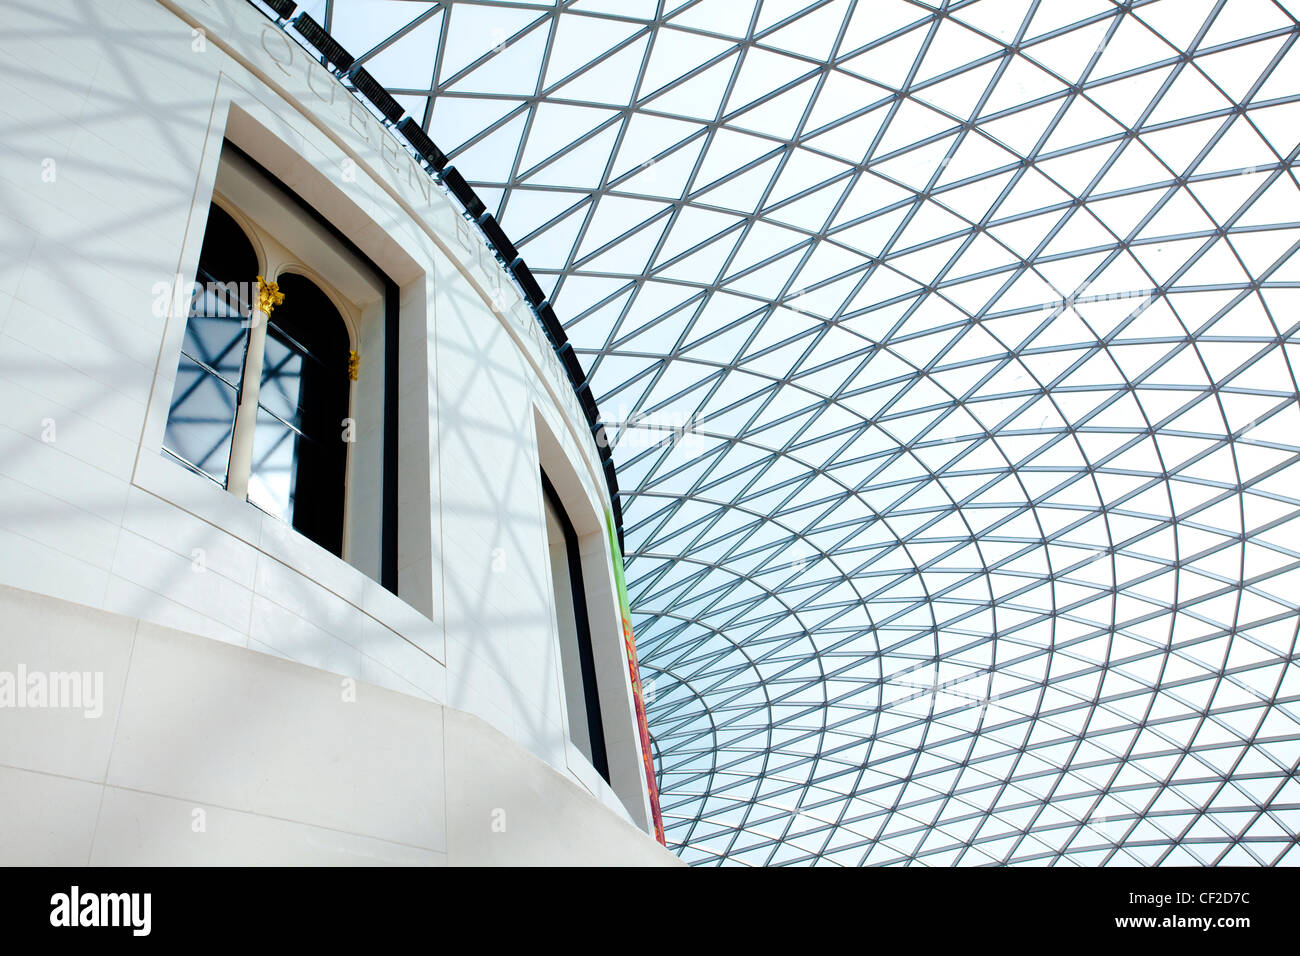 Le toit de verre couvrant la Queen Elizabeth II Great Court du British Museum. Photo Stock